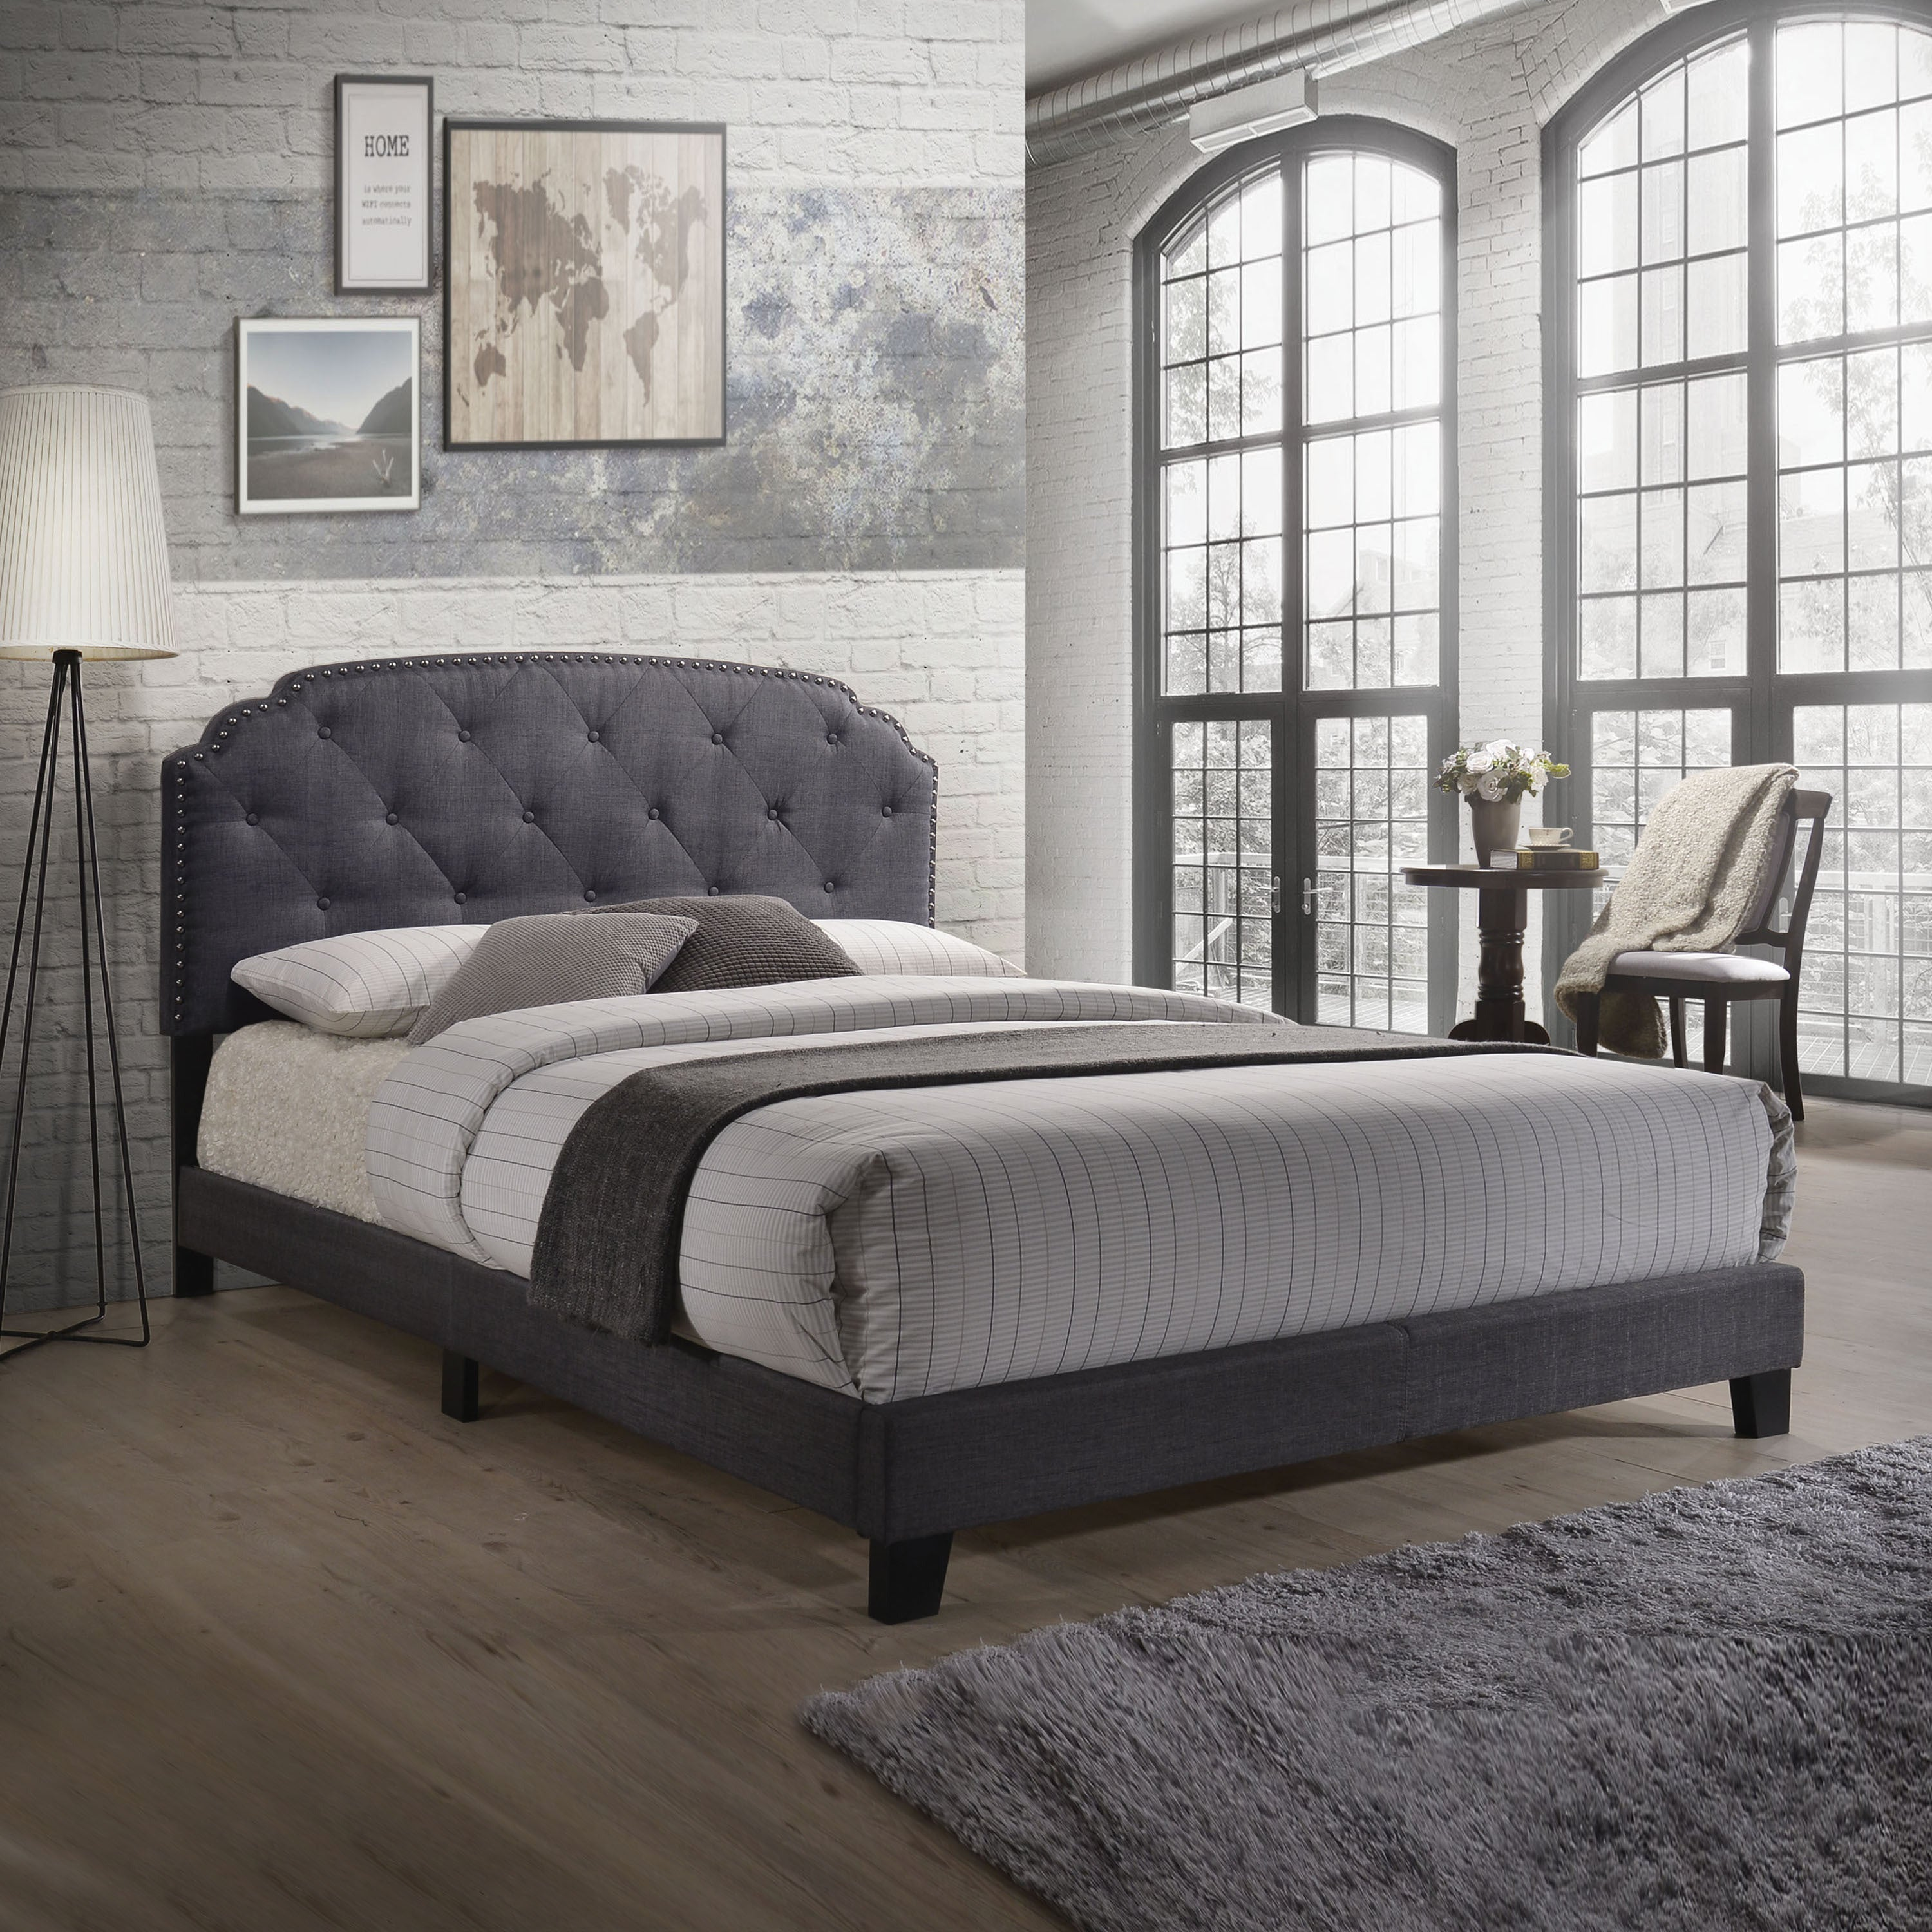 Shop Acme Furniture Tradilla Grey Fabric Queen Bed Free Shipping